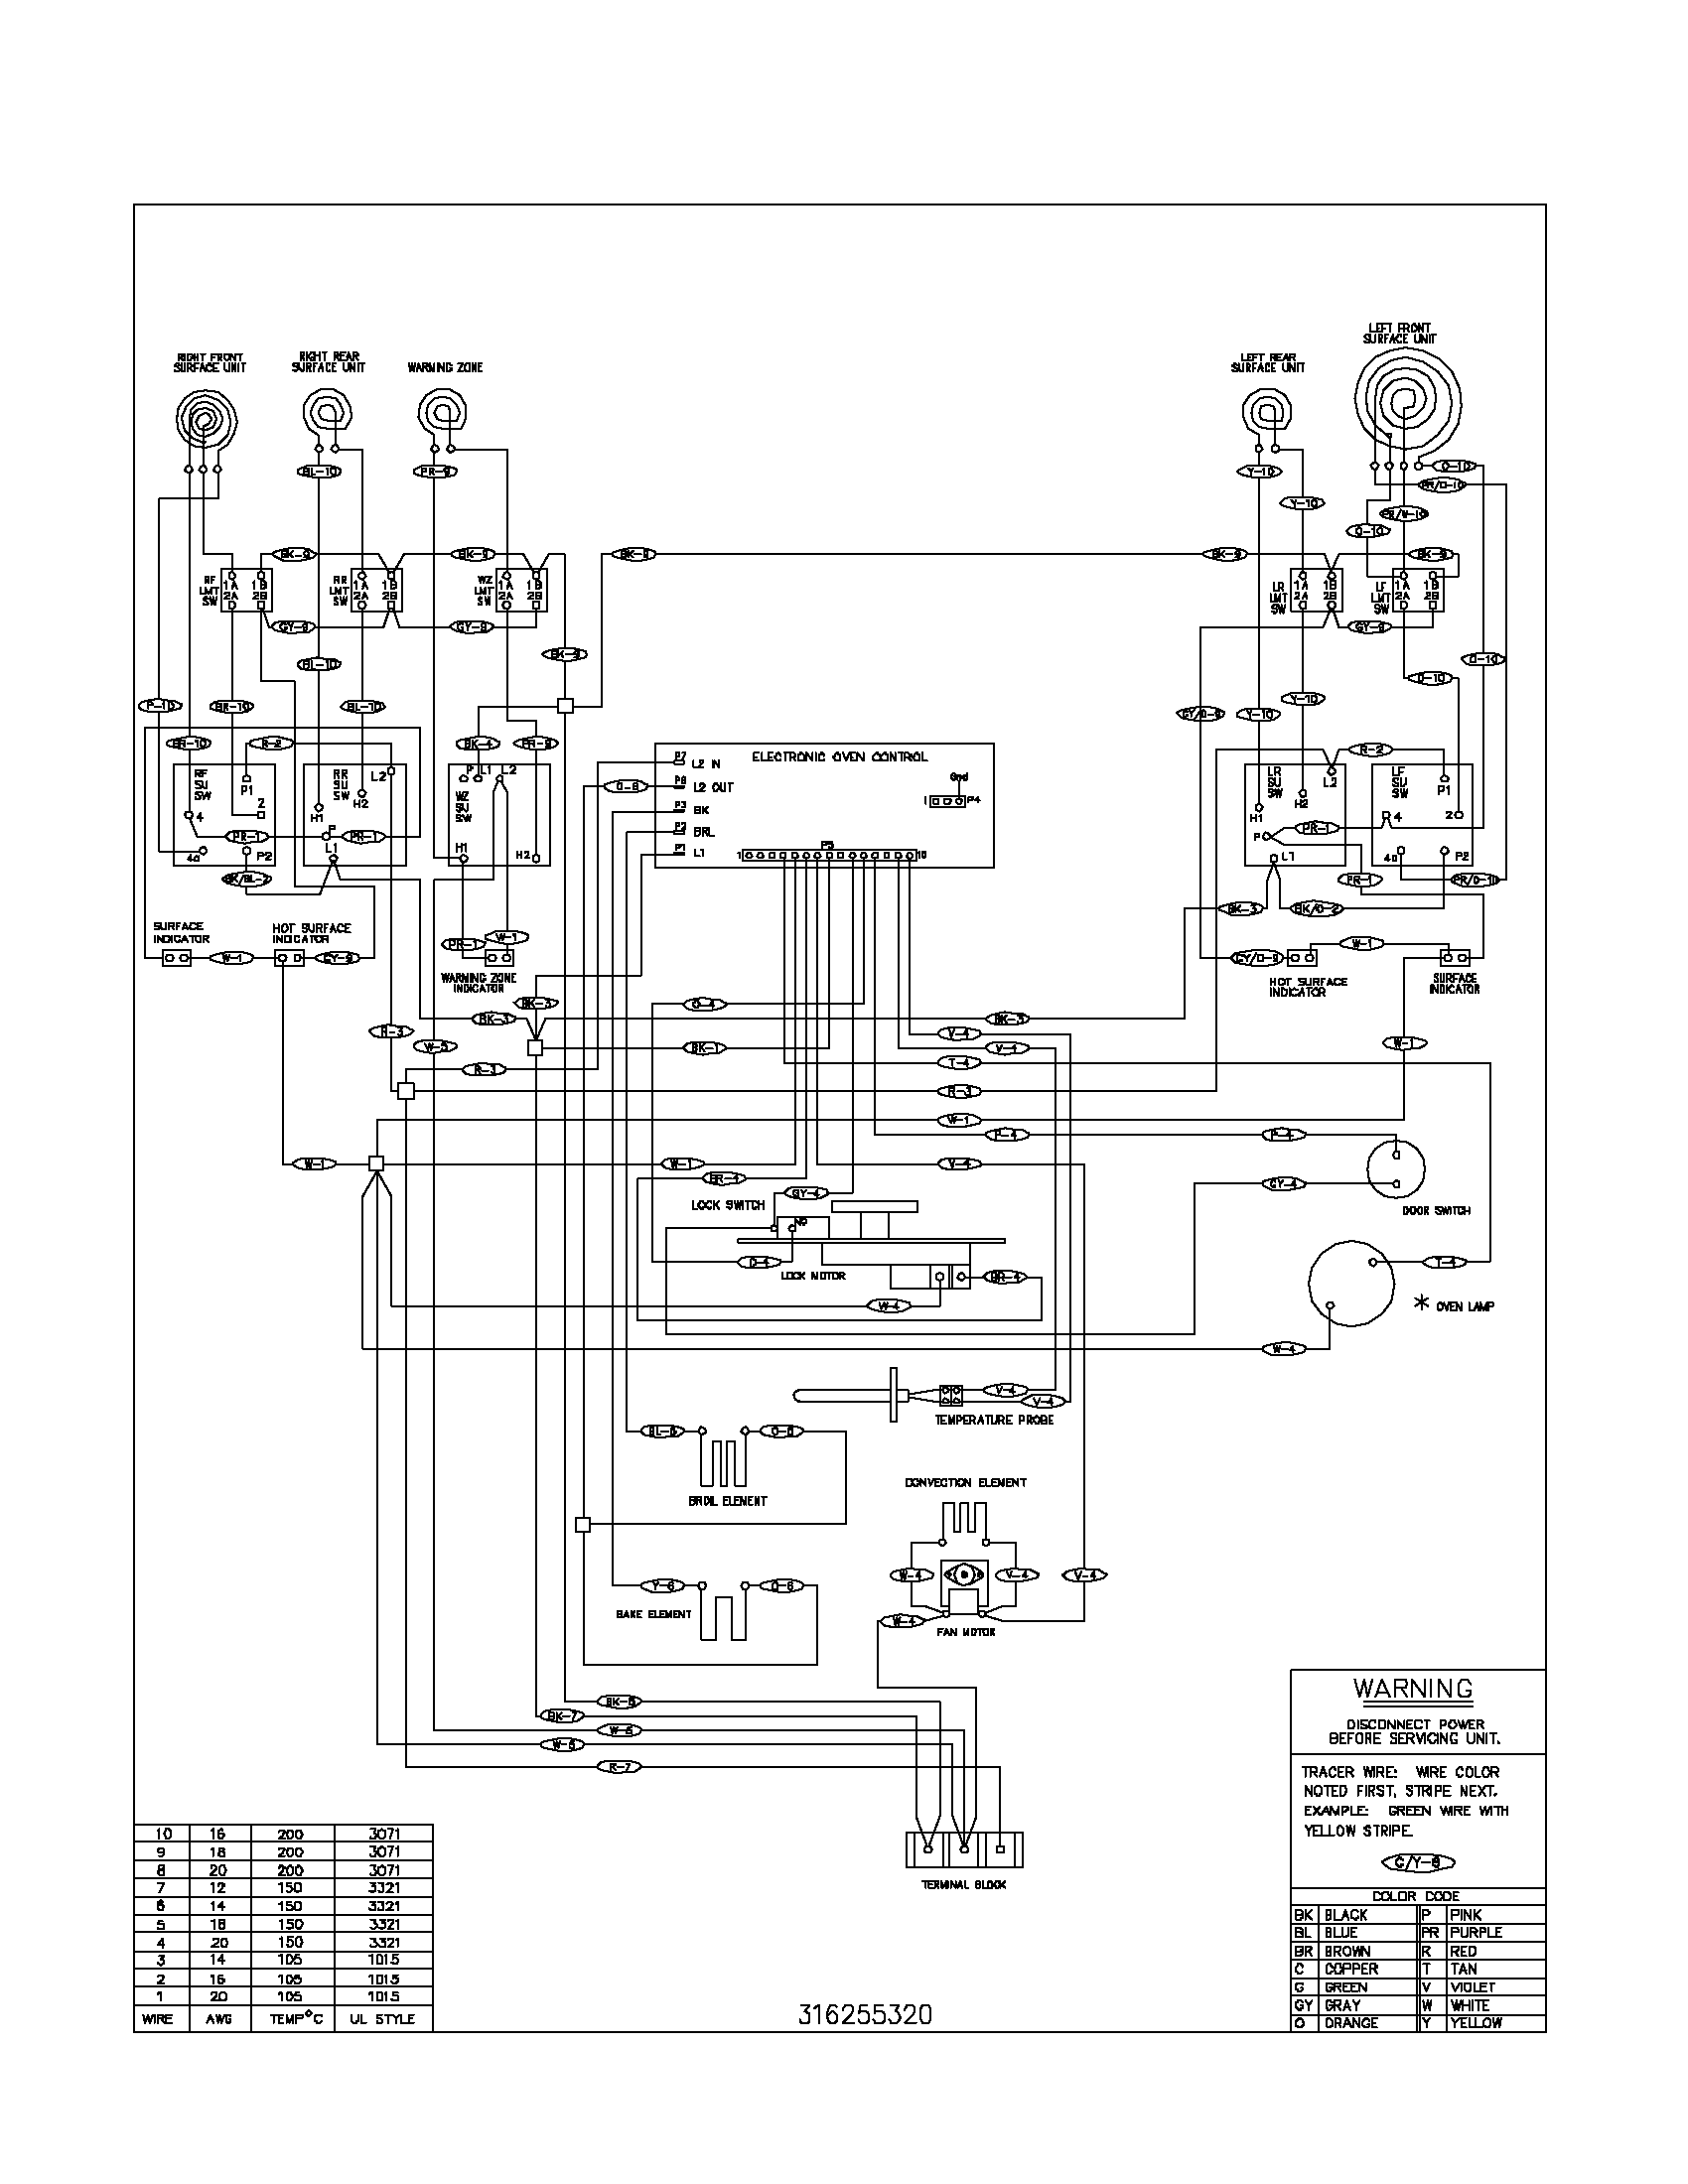 wiring diagram parts whirlpool fefl88acc electric range timer stove clocks and whirlpool refrigerator wiring diagram at edmiracle.co